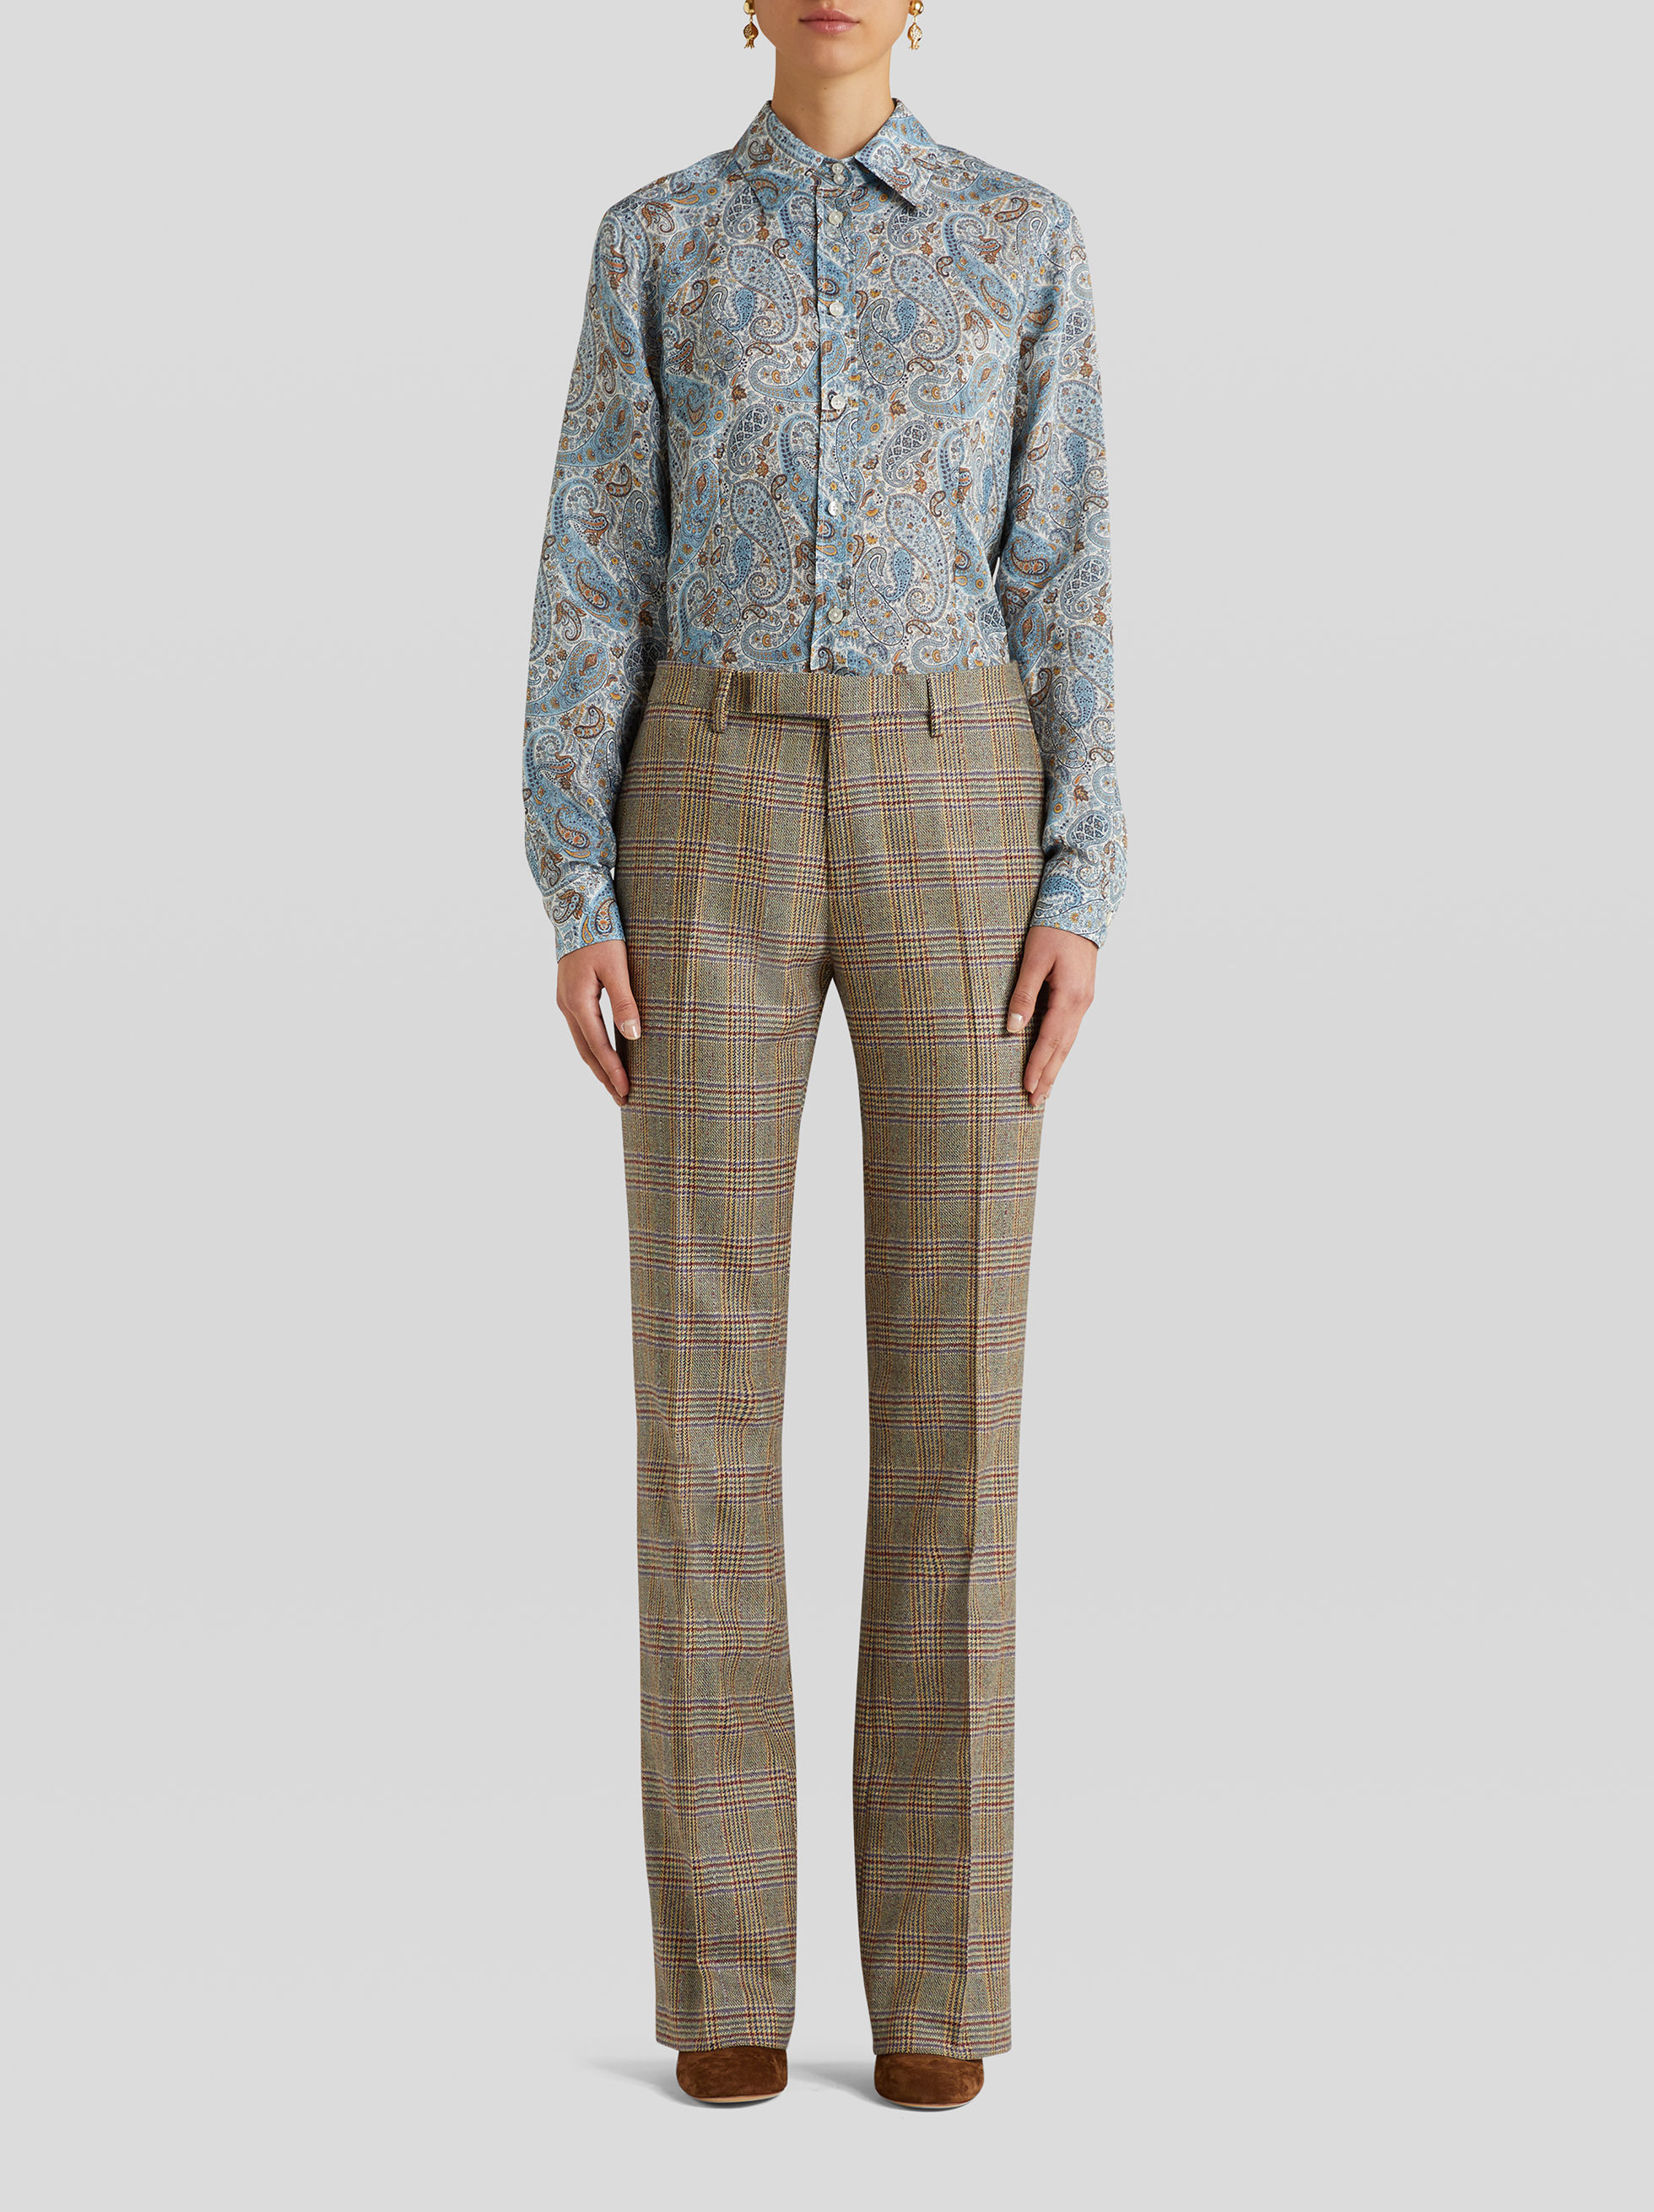 TAILORED TROUSERS IN PRINCE OF WALES CHECK